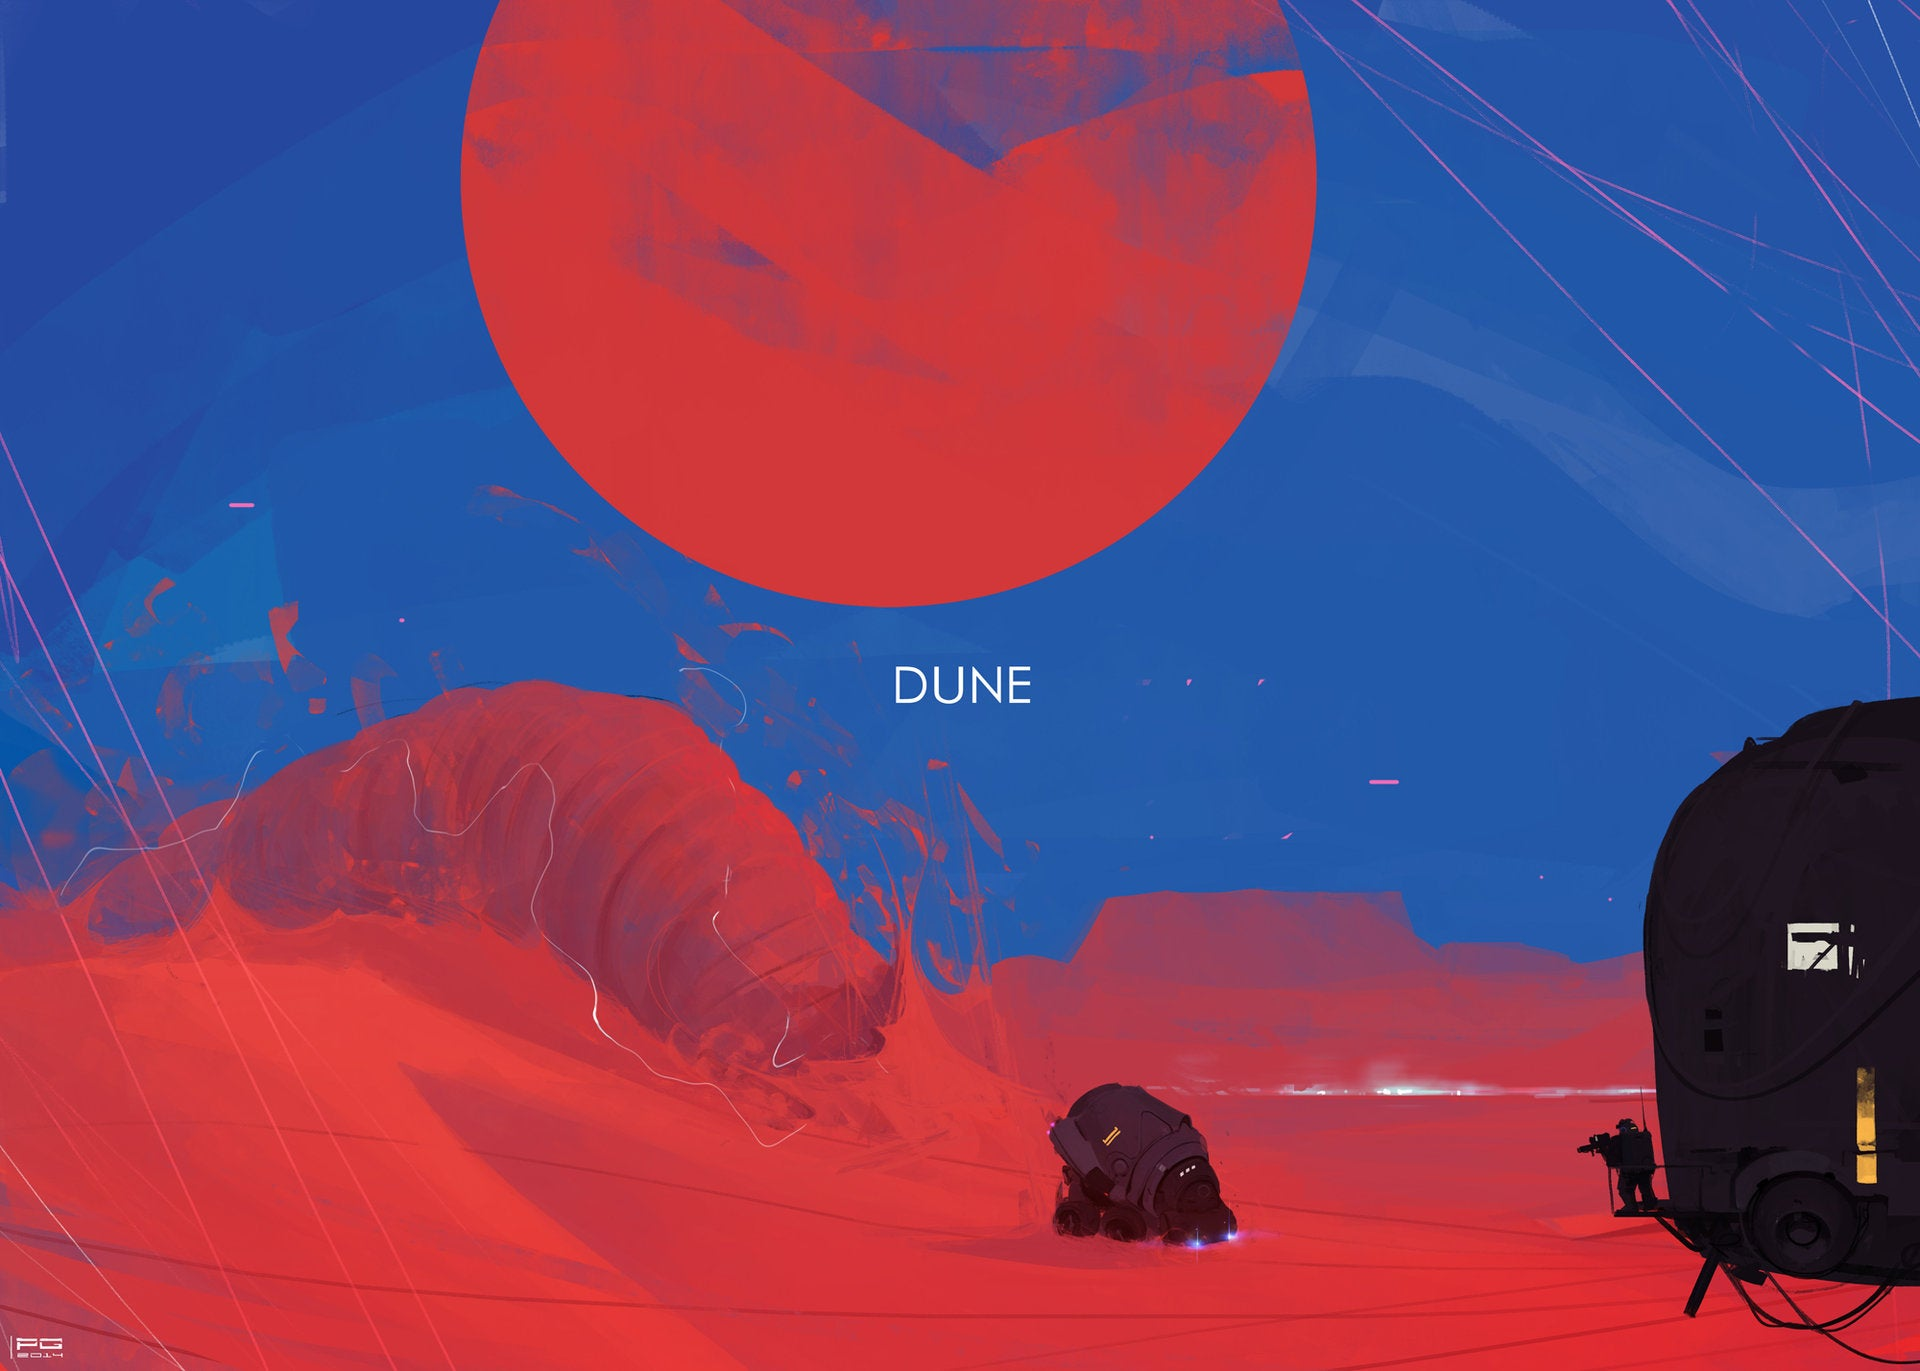 What Dune Should Look Like